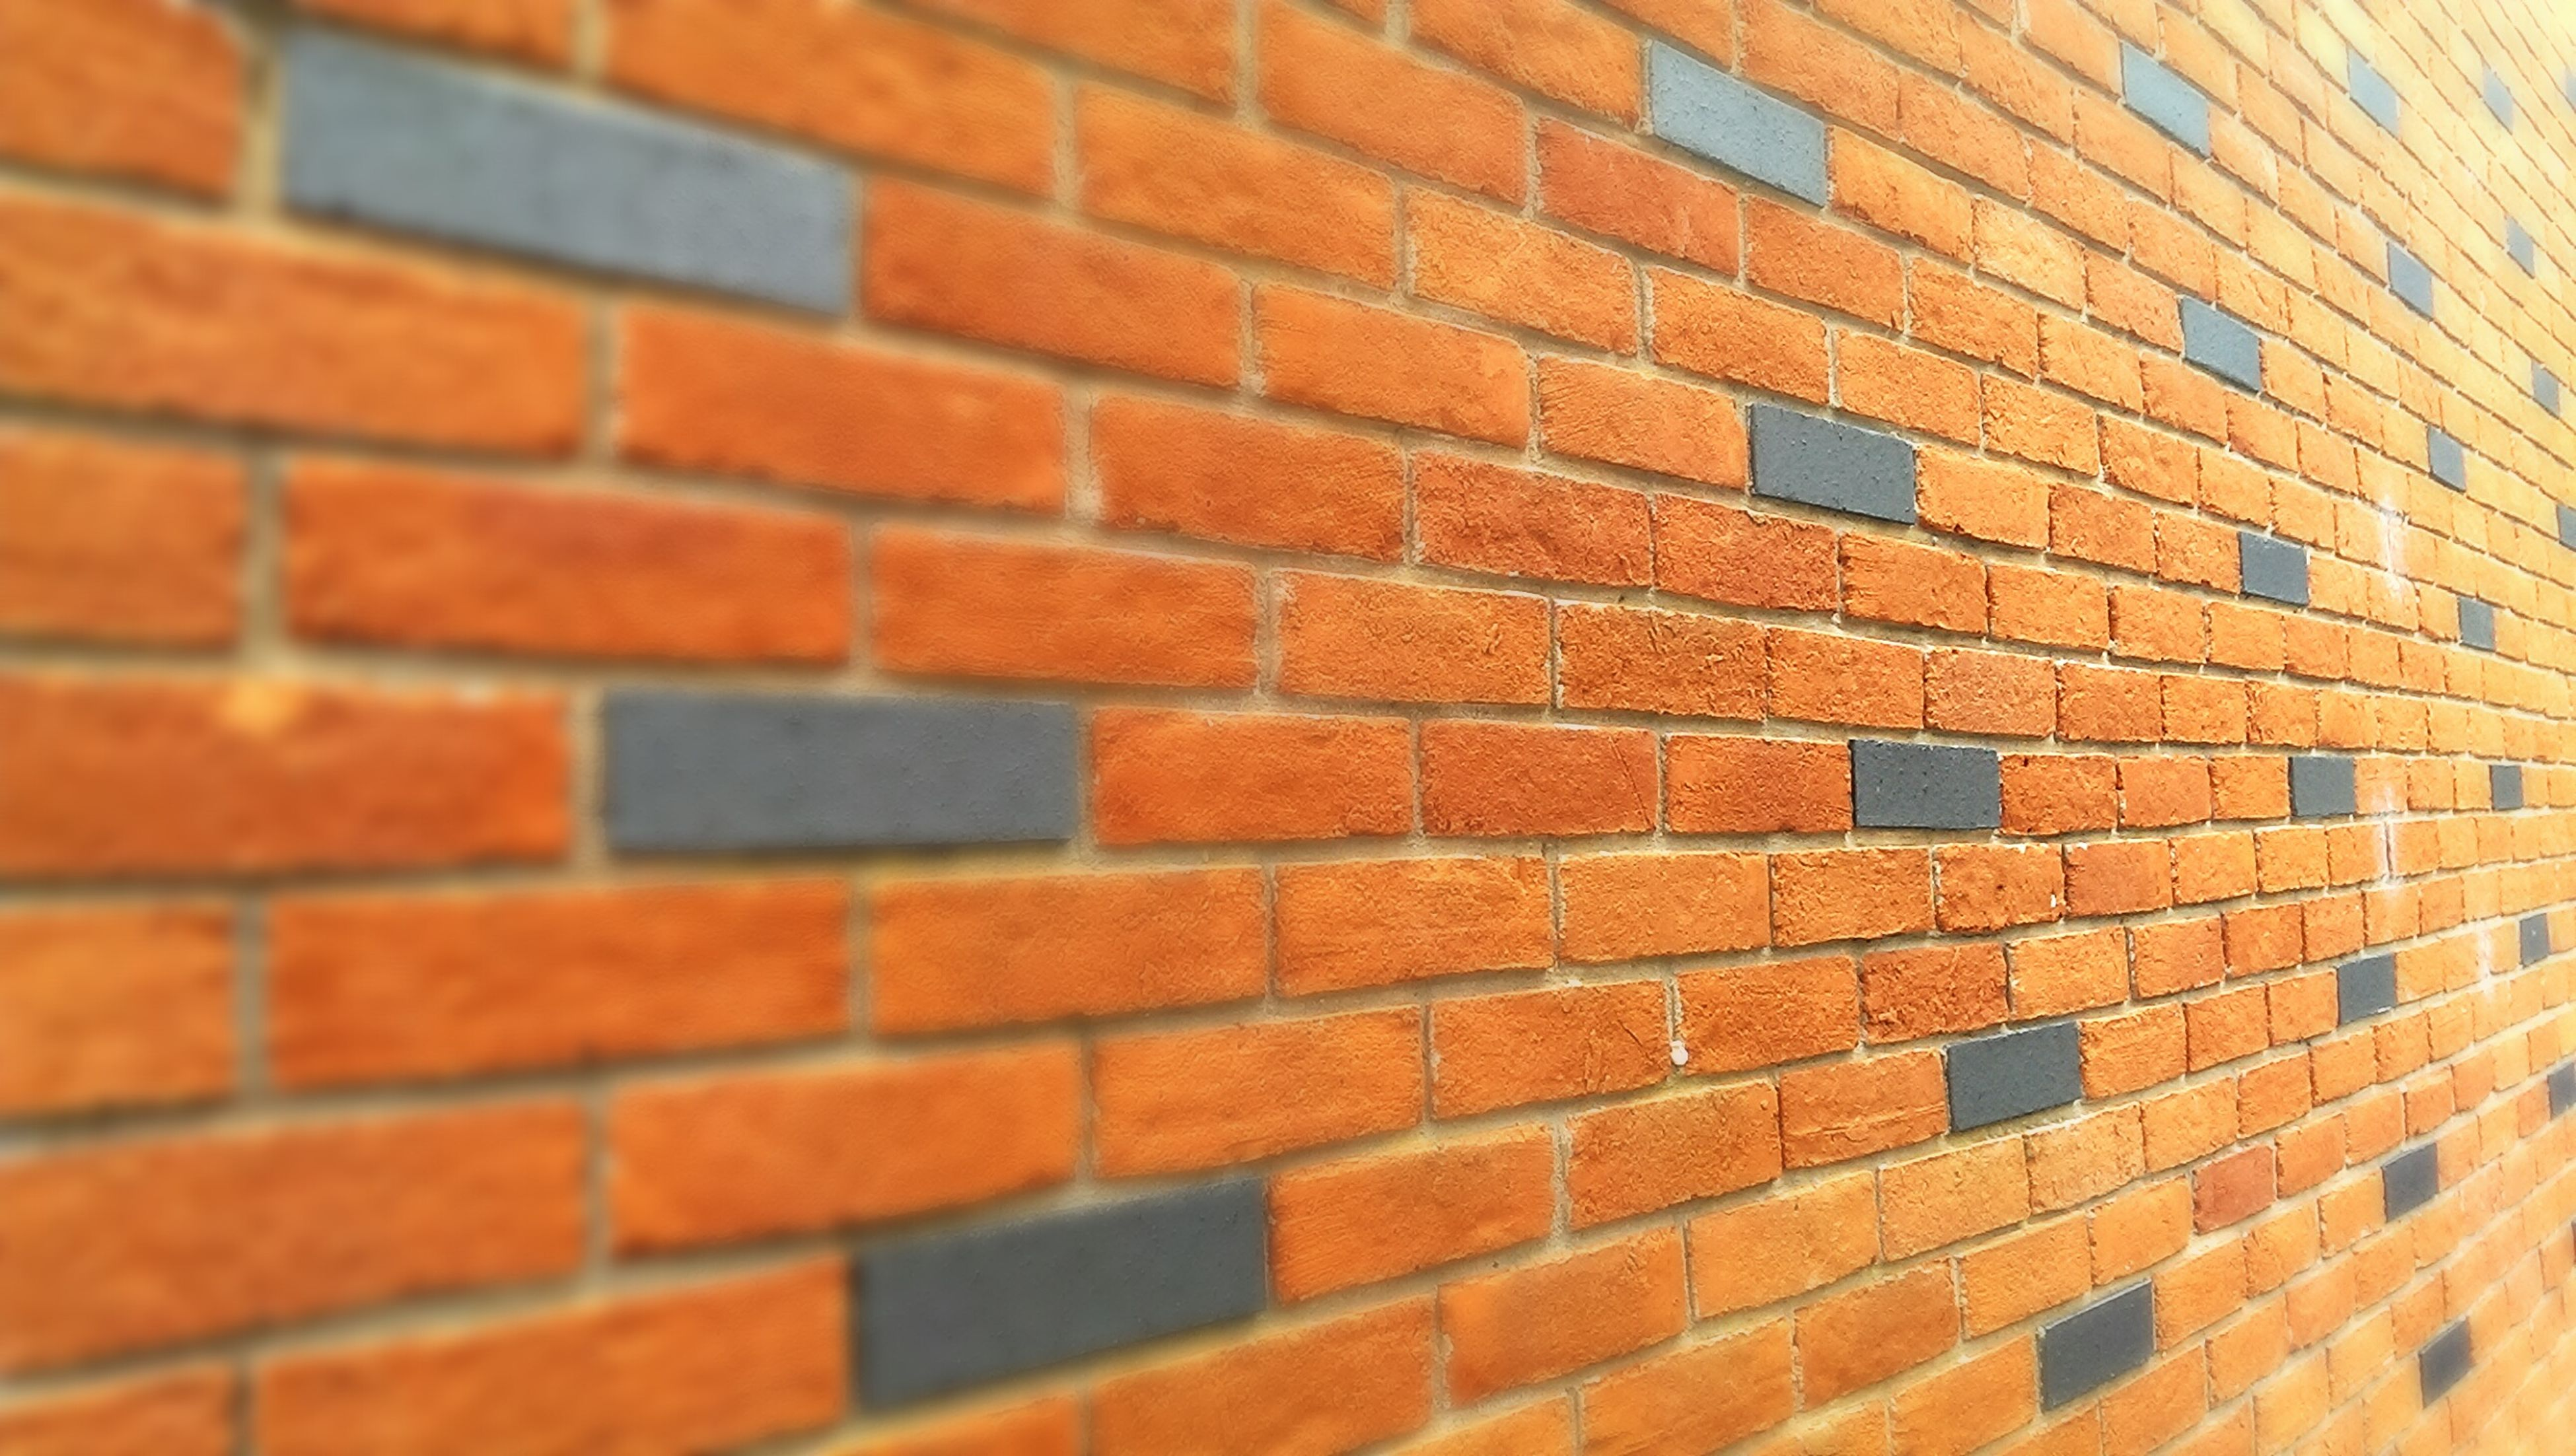 brick wall, full frame, backgrounds, architecture, built structure, wall - building feature, textured, pattern, building exterior, brick, close-up, red, wall, repetition, no people, window, day, stone wall, outdoors, detail